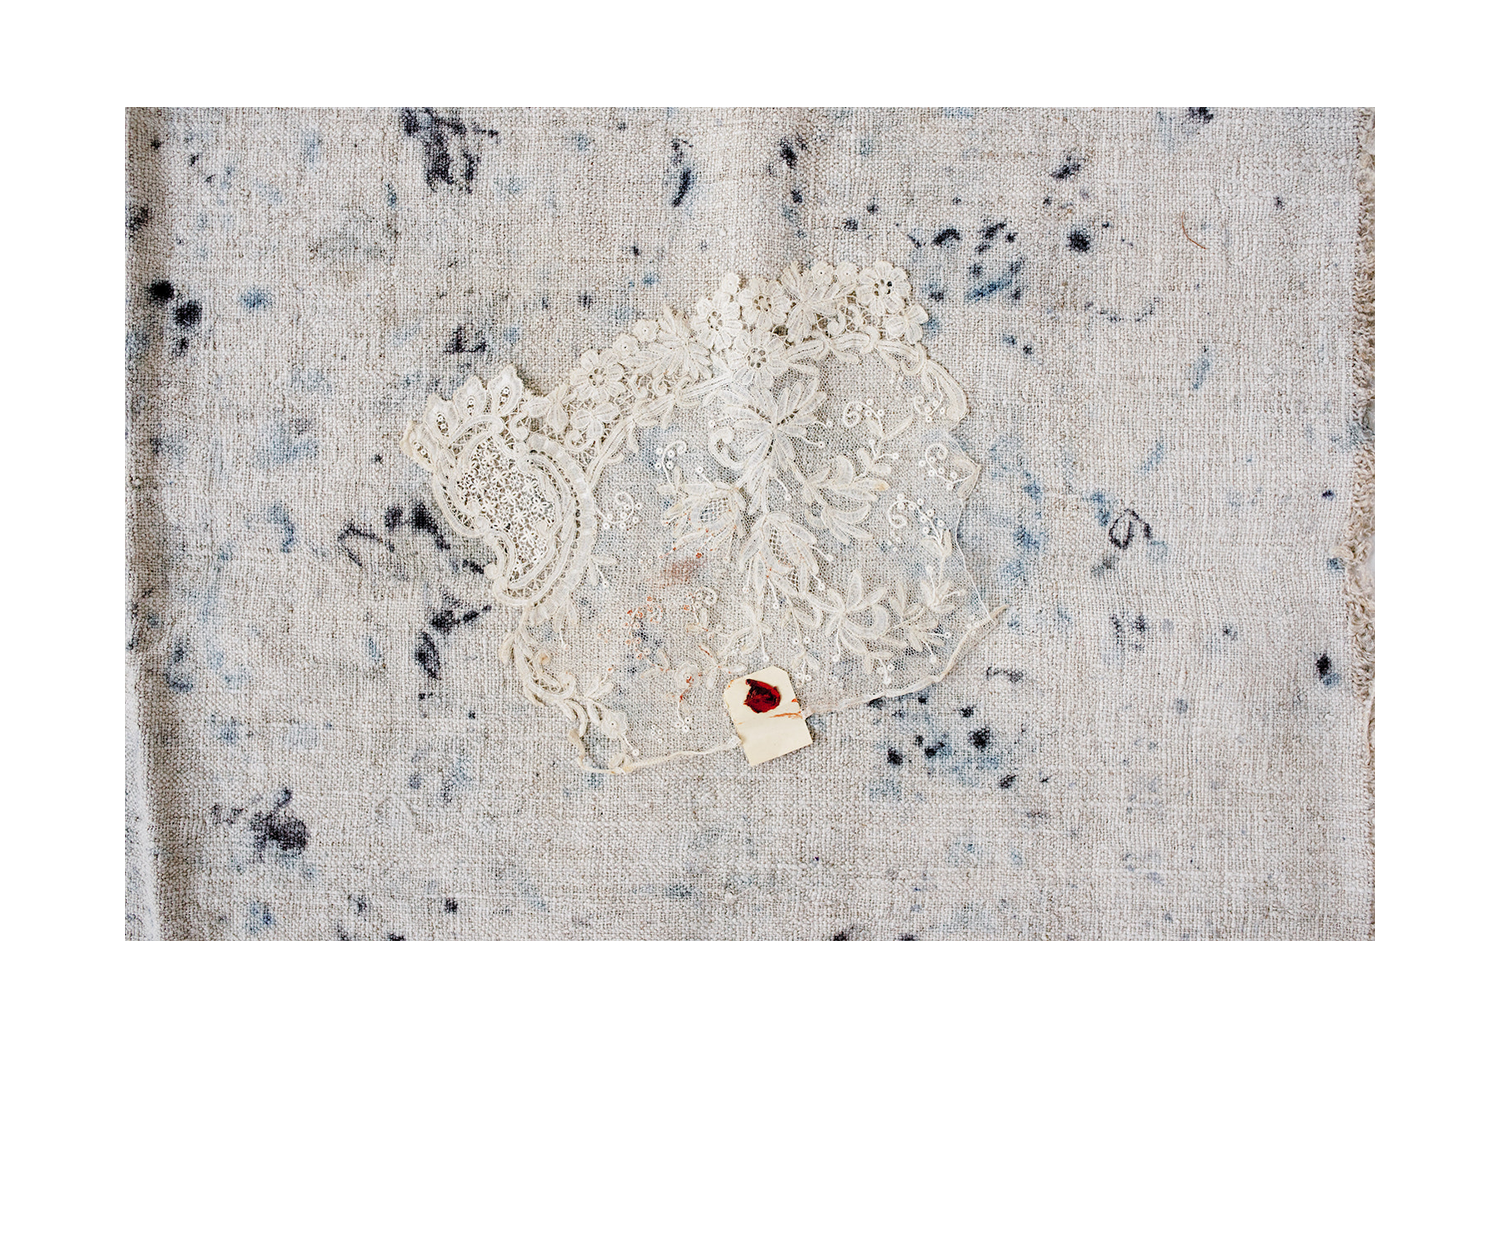 - Brussels Tape Lace style, c. late 19th - early 20th c., with delicate scrolling floral work, handmade. Fragment includes original wax seal tag.